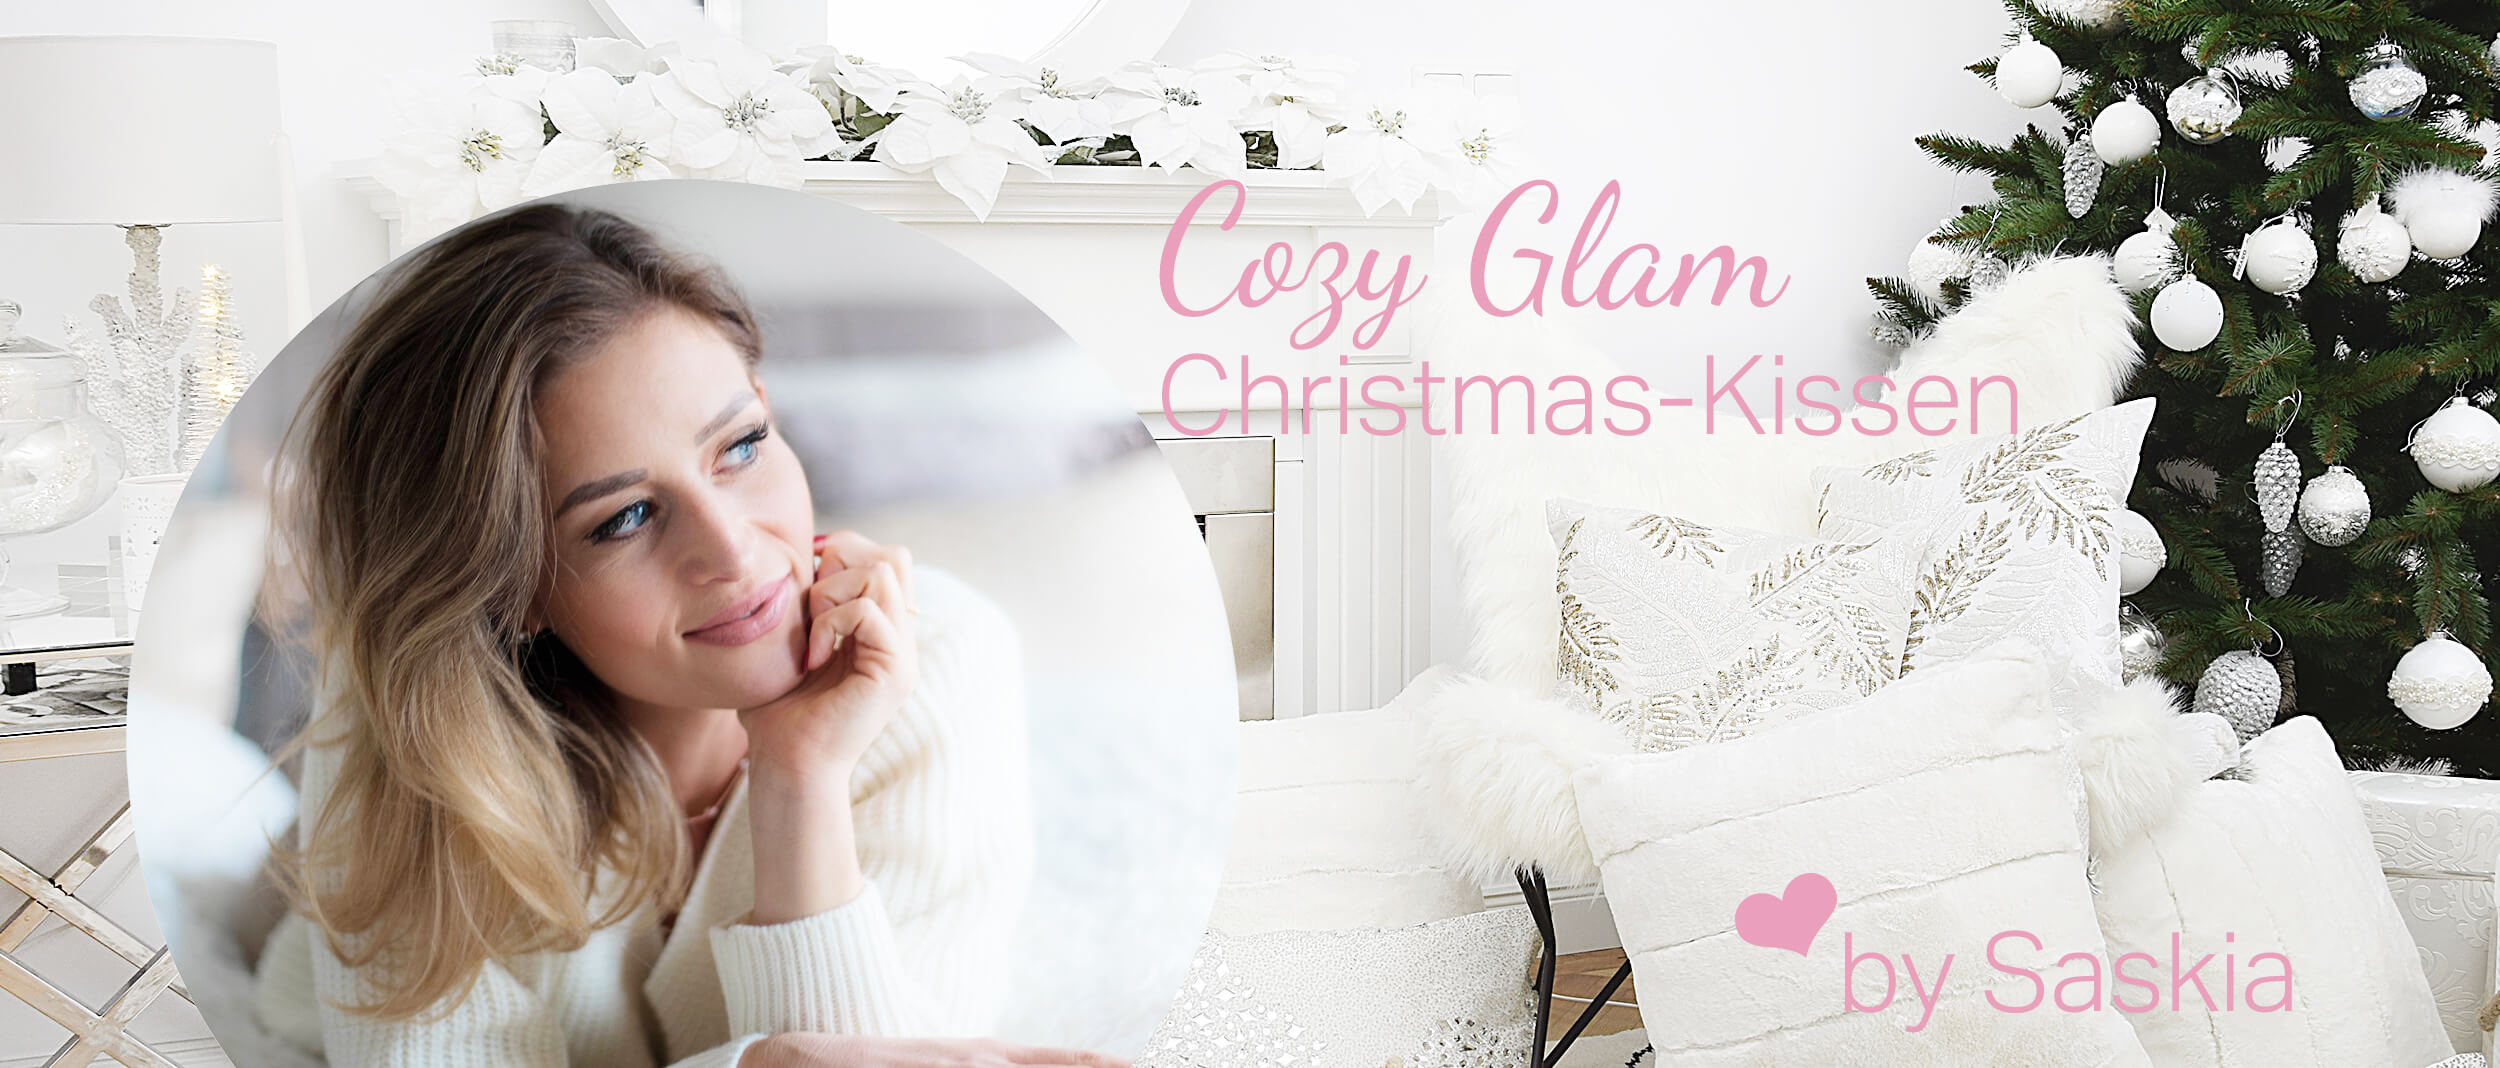 Cozy Glam Christmas selected by Saskia